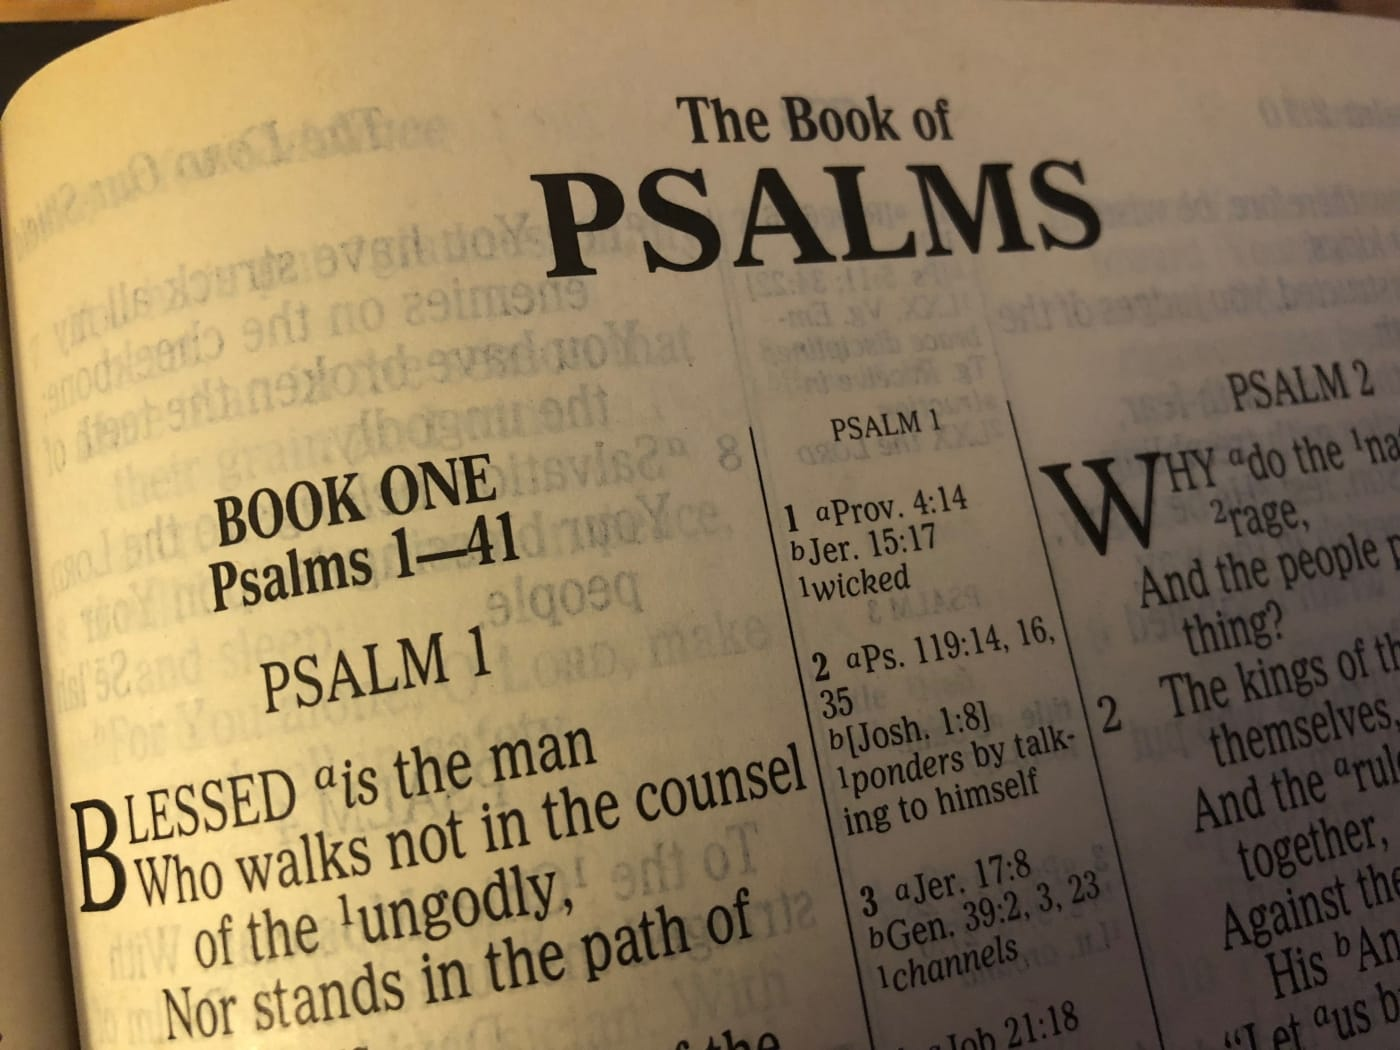 Psalm 2 - A Prophecy of Christ